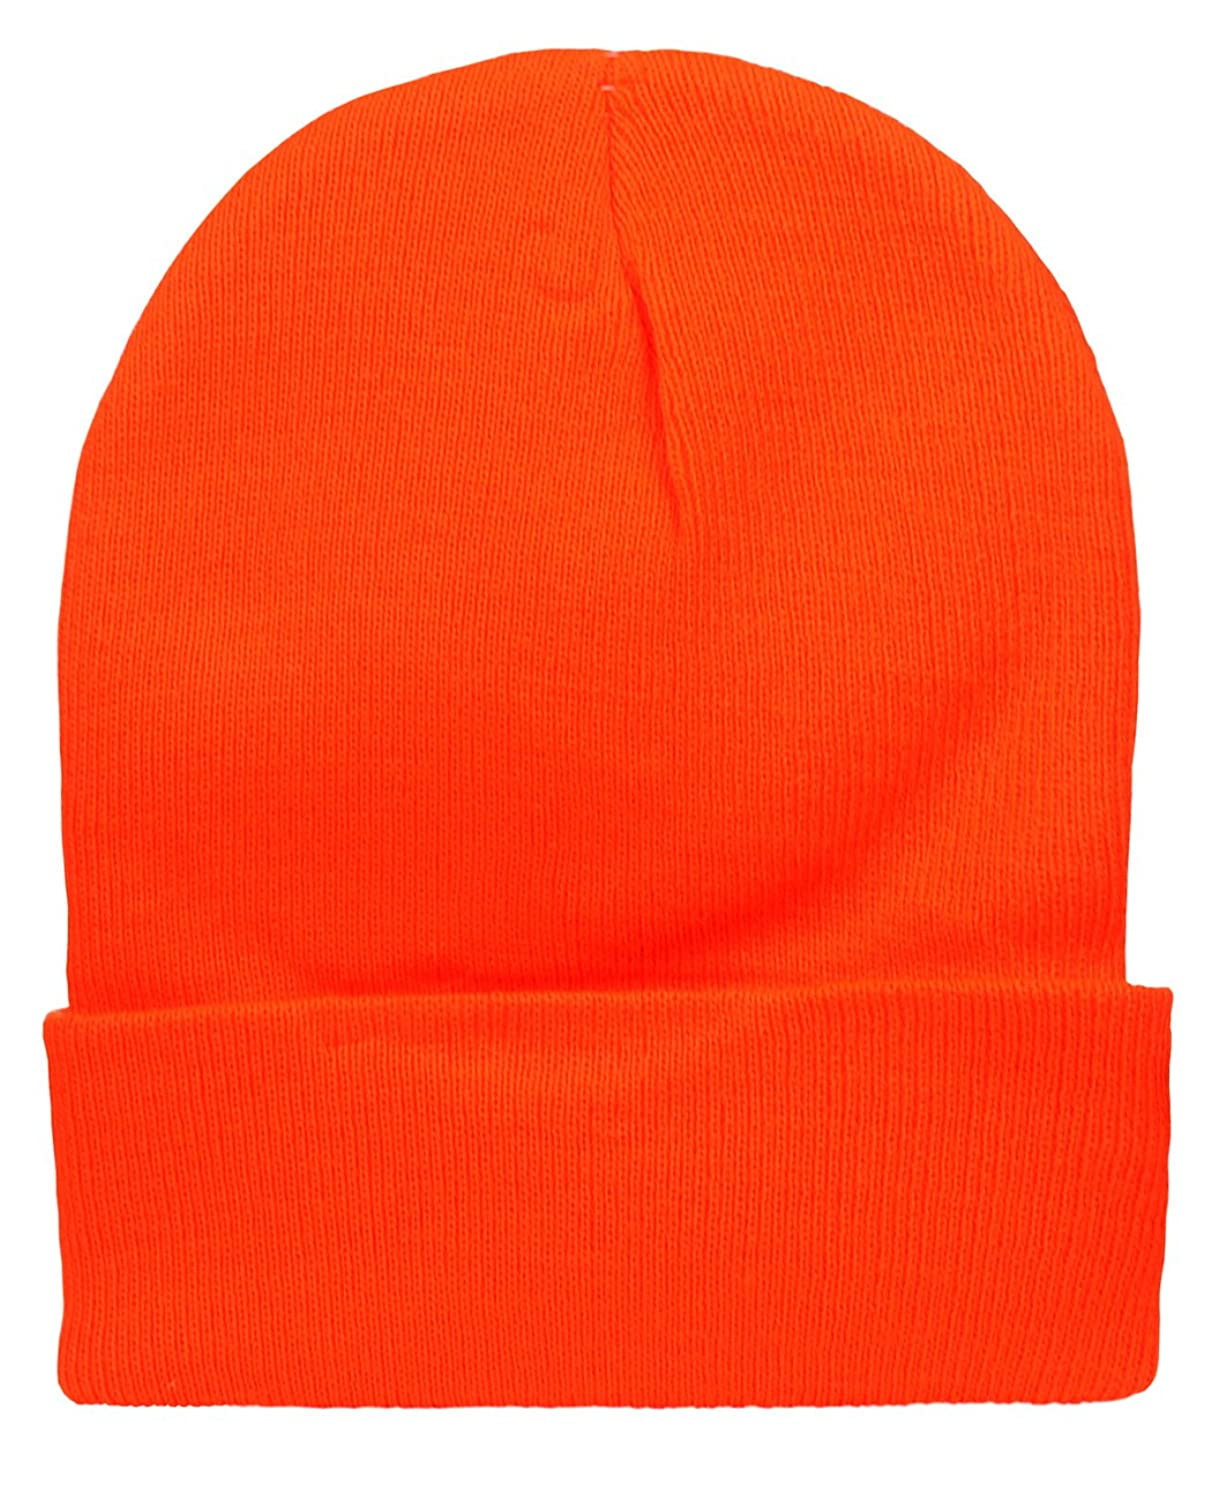 Cap911 2040 Usa Unisex Plain 12 Inch Long Beanie   Many Colors by Cap911